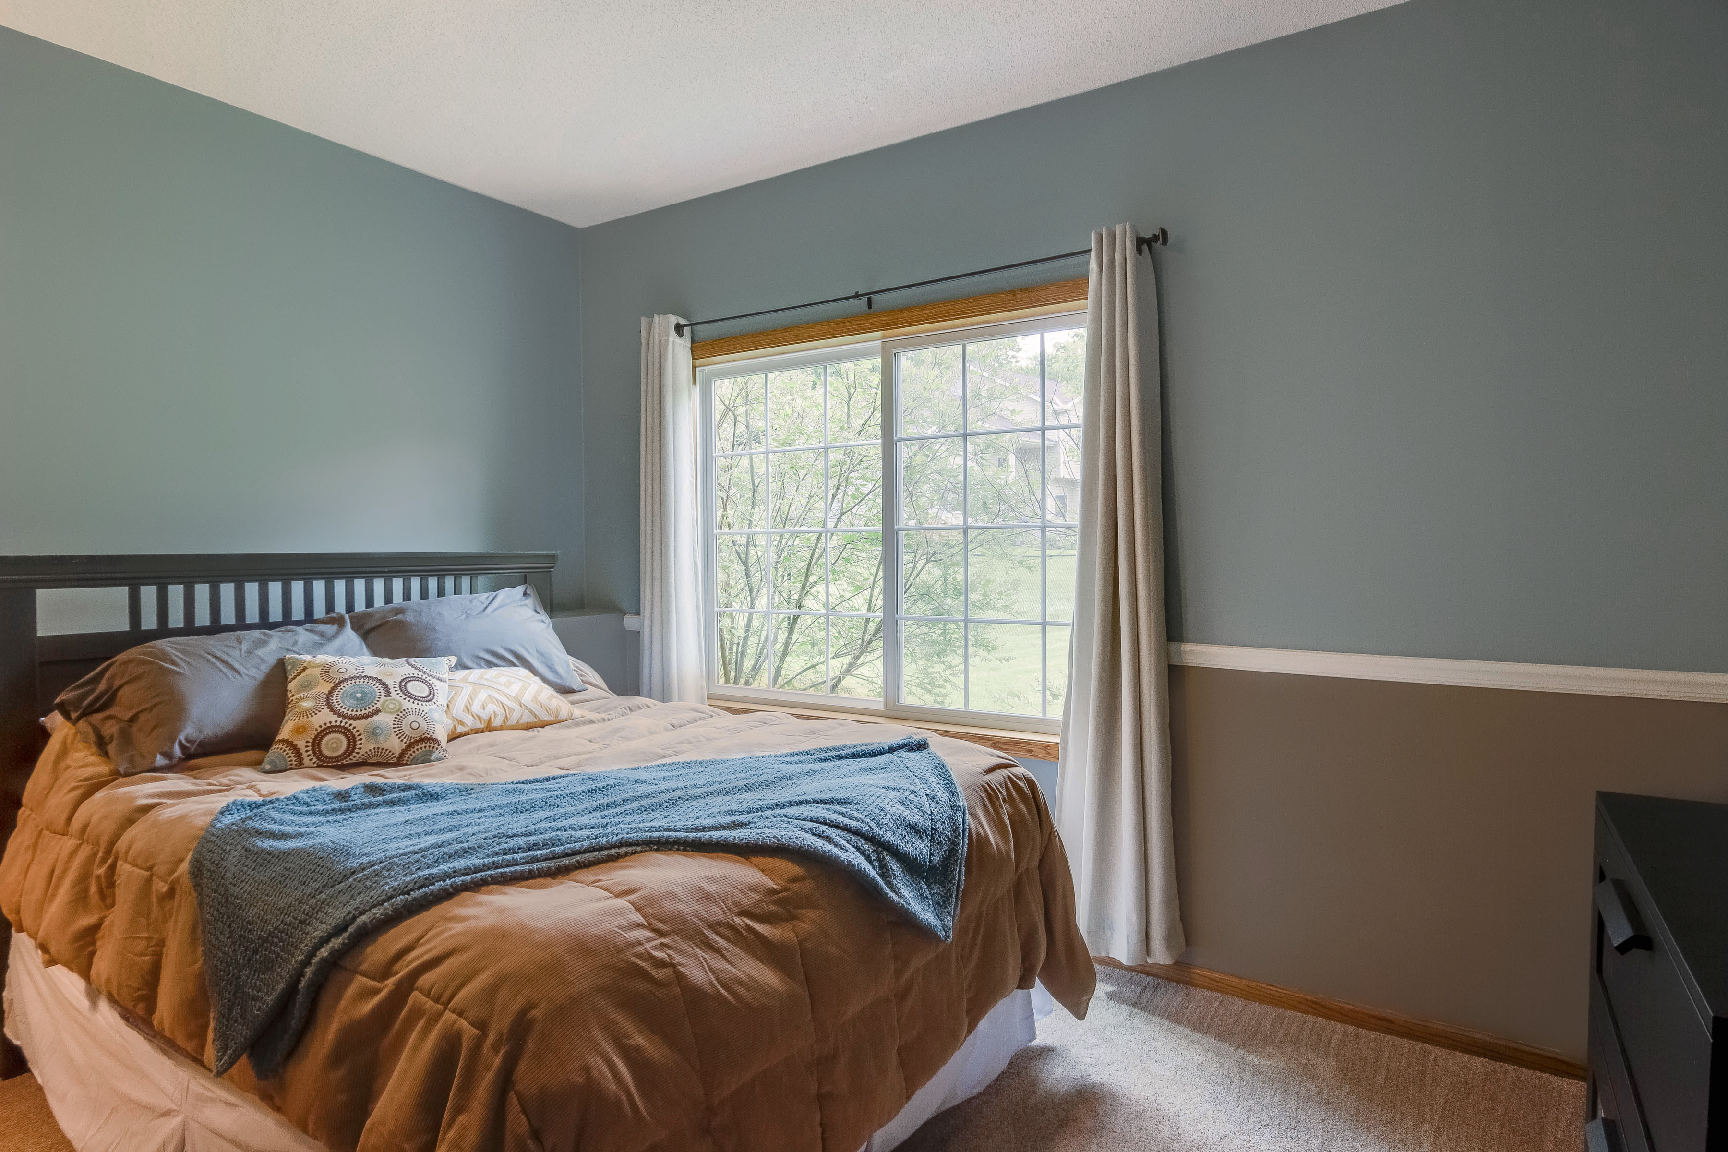 bedroom with Infinity from Marvin replacement slider window